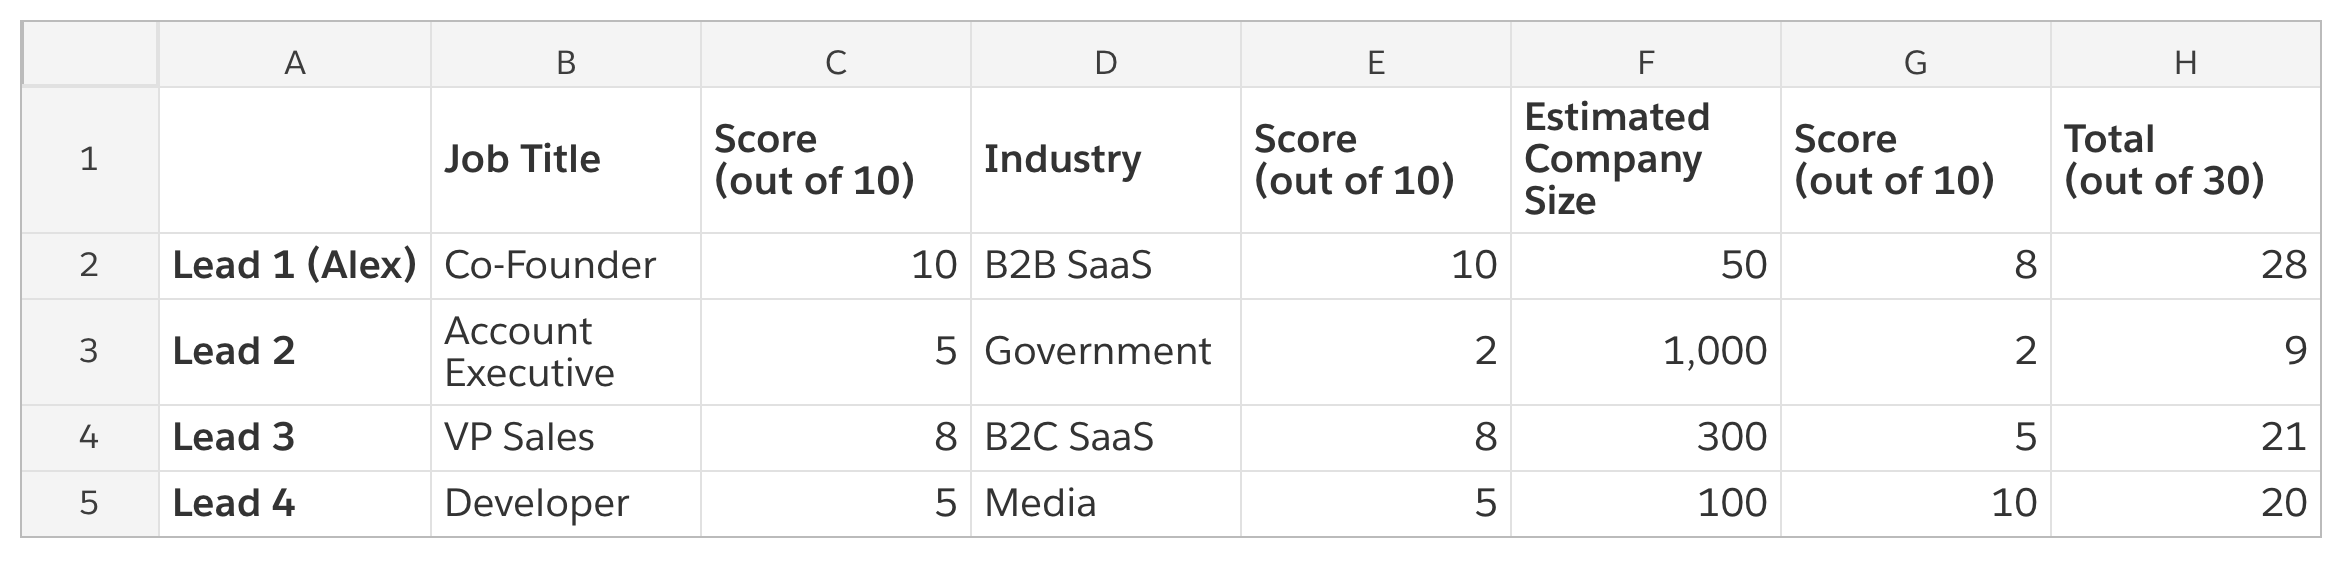 A screenshot of a lead score matrix, with information on job title, industry, and estimated company size.